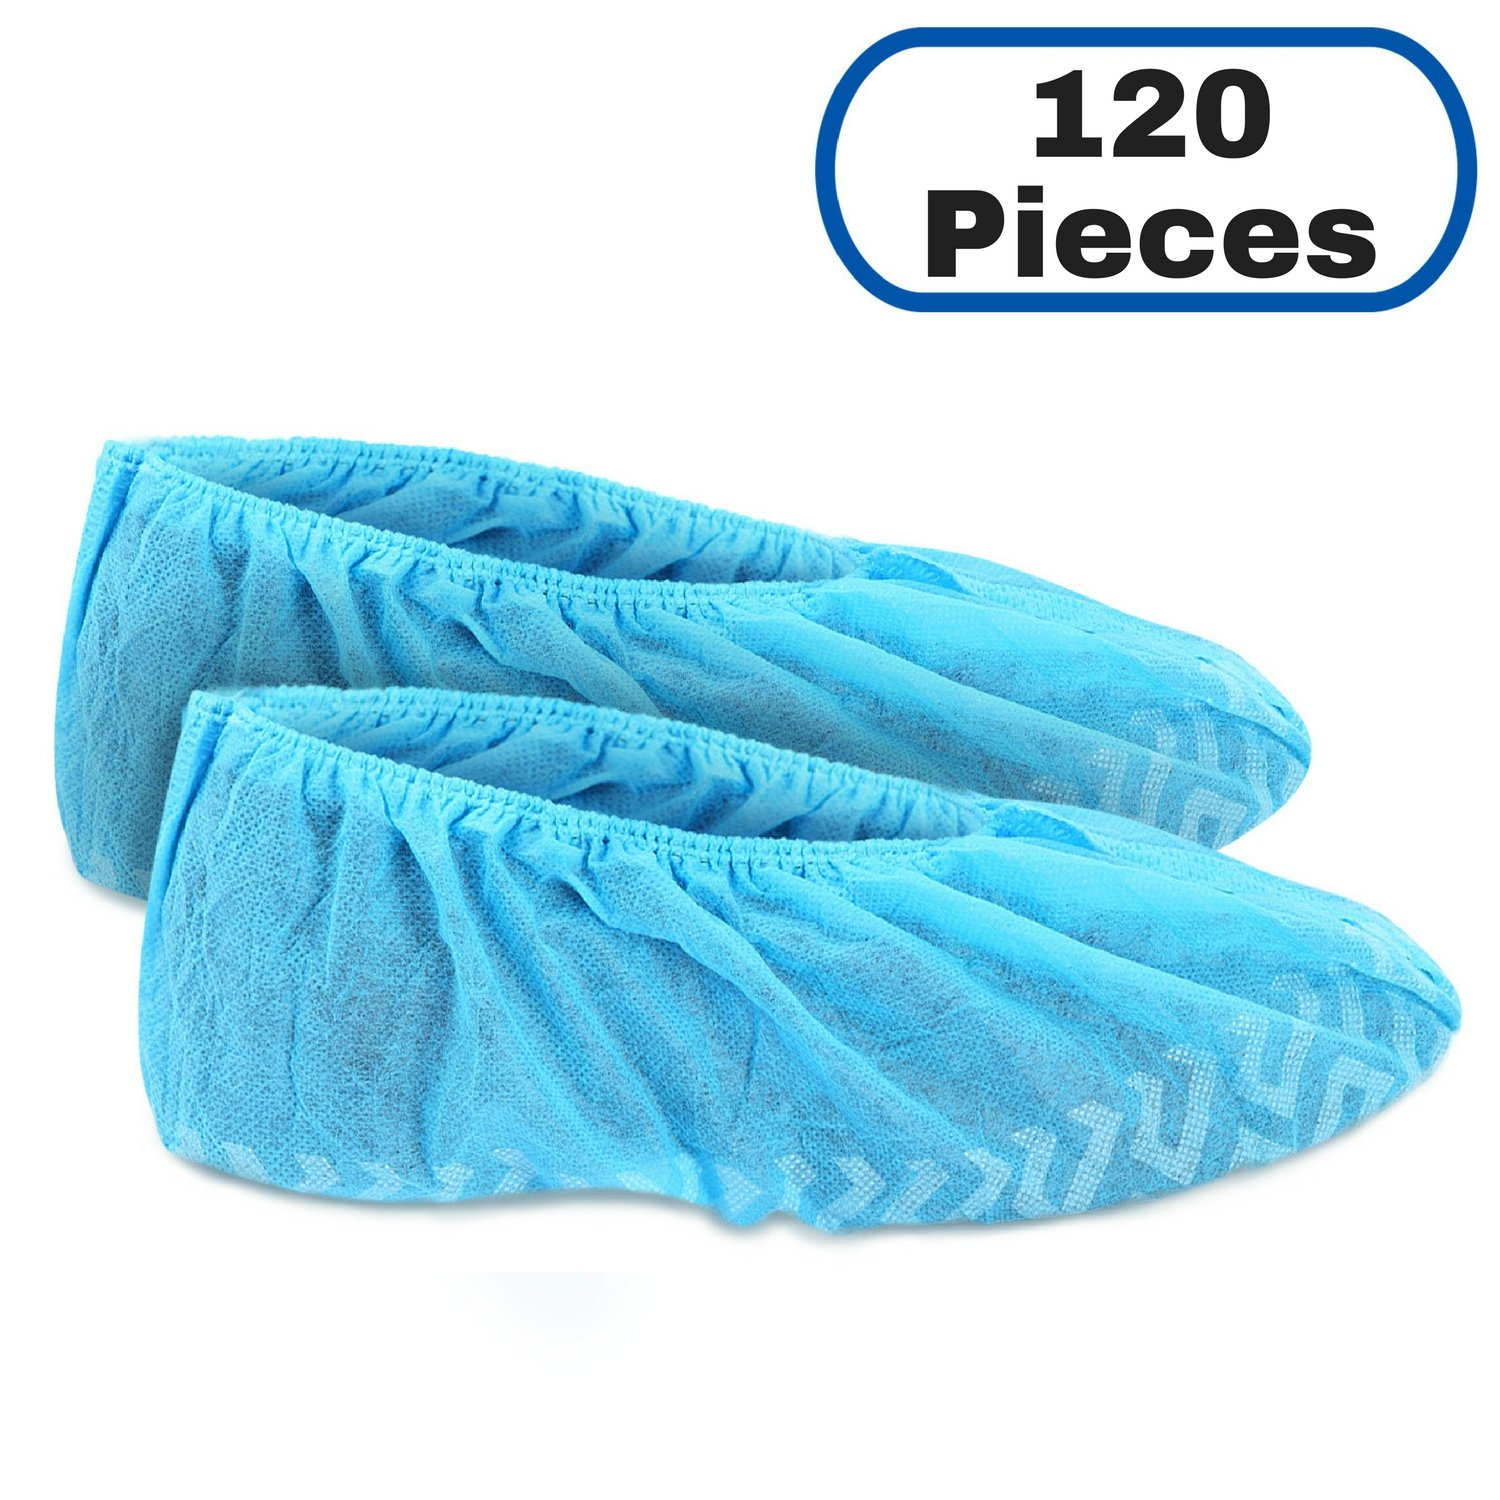 MIFFLIN Disposable Shoe Covers (Blue, 120 Pieces) Durable Boot Covers, Non-Slip Polypropylene, One Size Fits Most